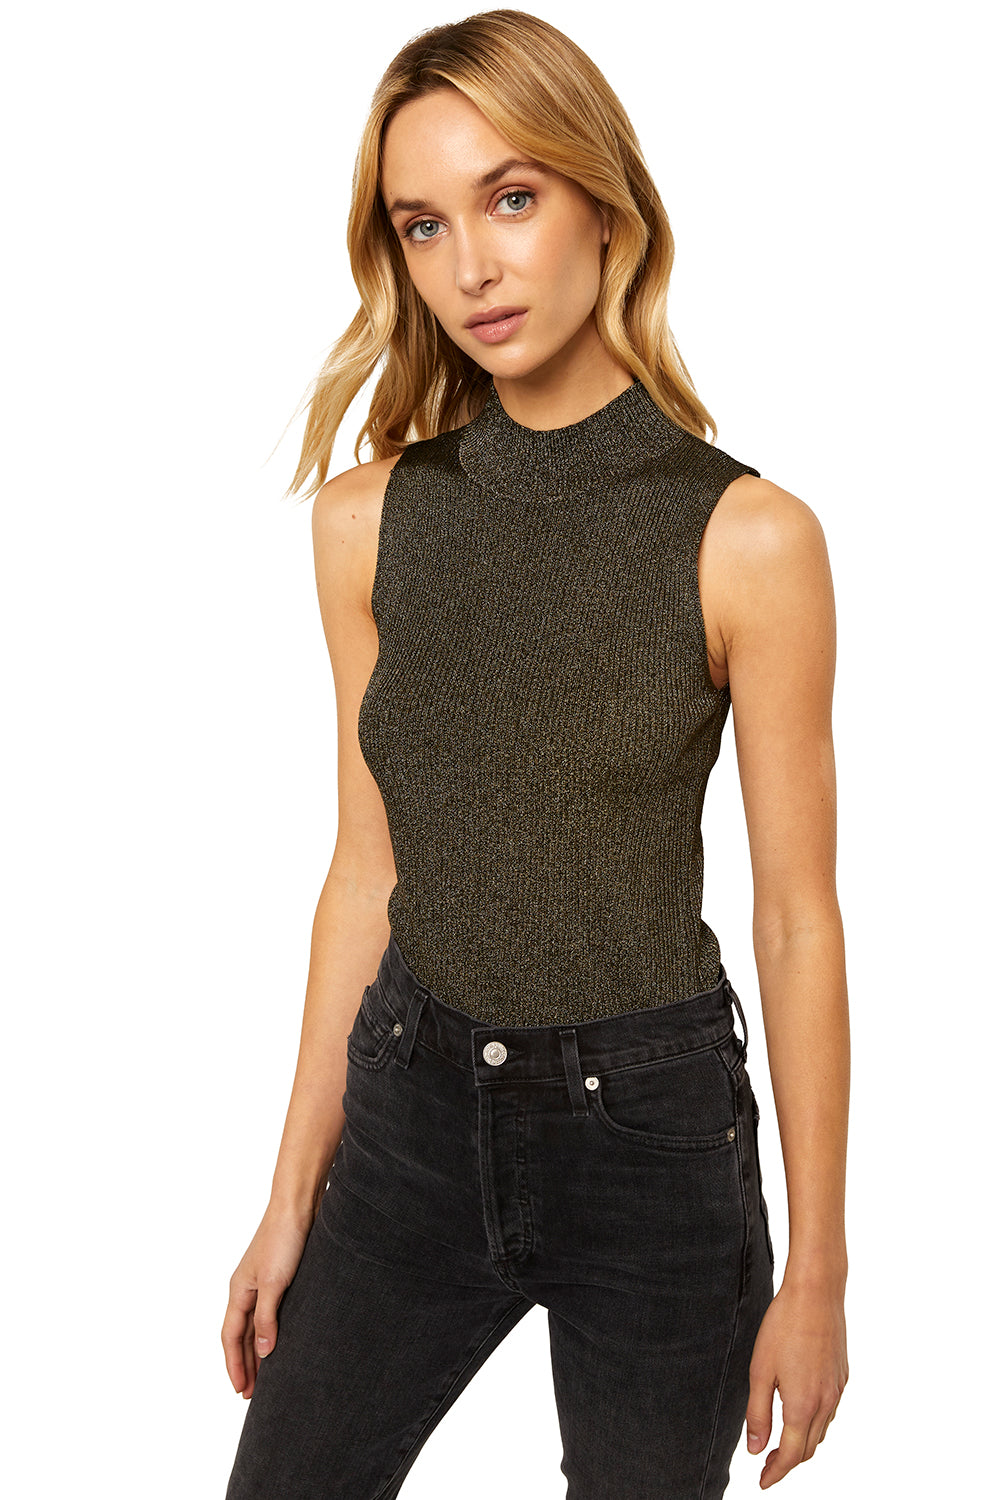 ASTRID KNIT TOP - MISA Los Angeles